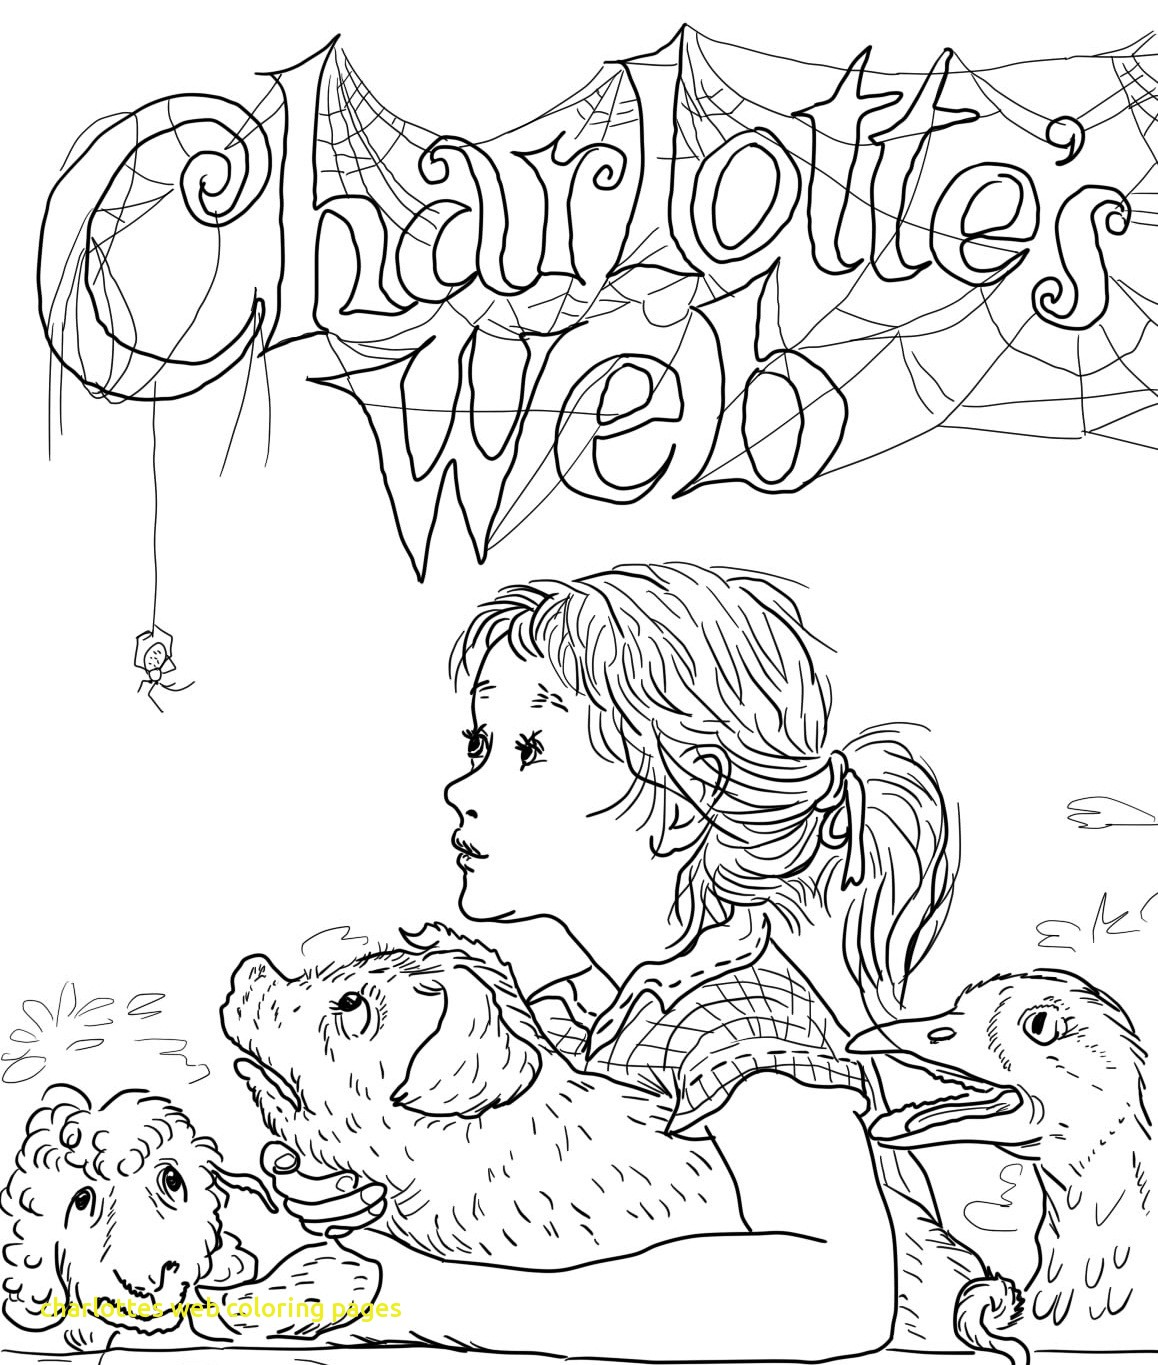 1158x1365 Charlottes Web Coloring Pages With Ideas Charlotte Stunning